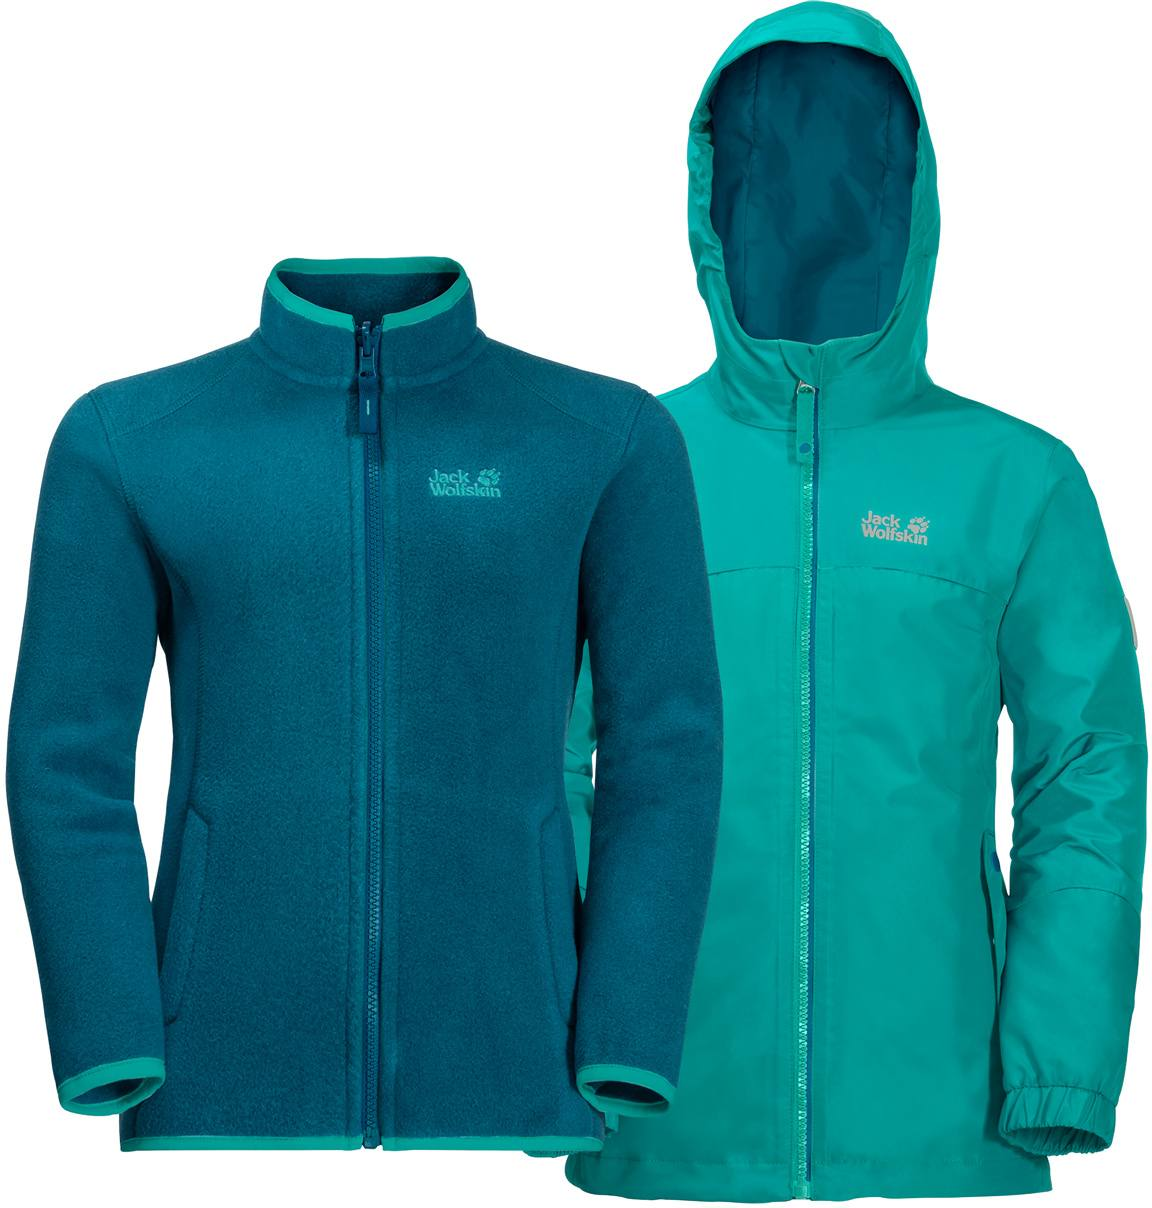 latest discount new arrive free shipping Jack Wolfskin Iceland 3In1 Jkt B